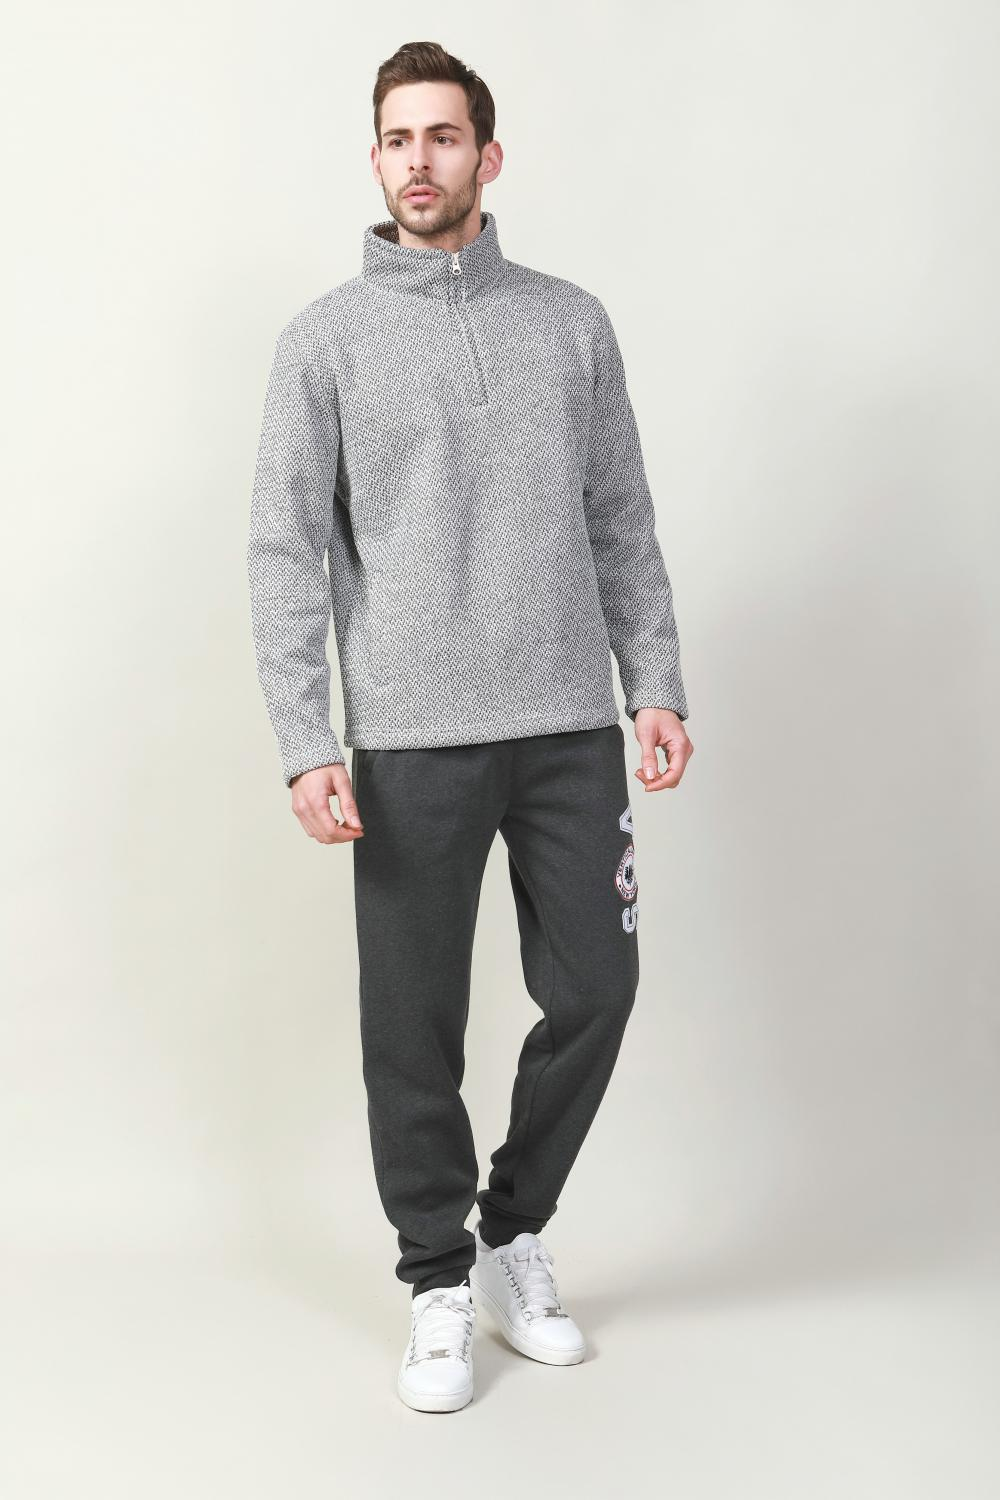 Men's bonded fleece in weight 400gsm pullover Jacket